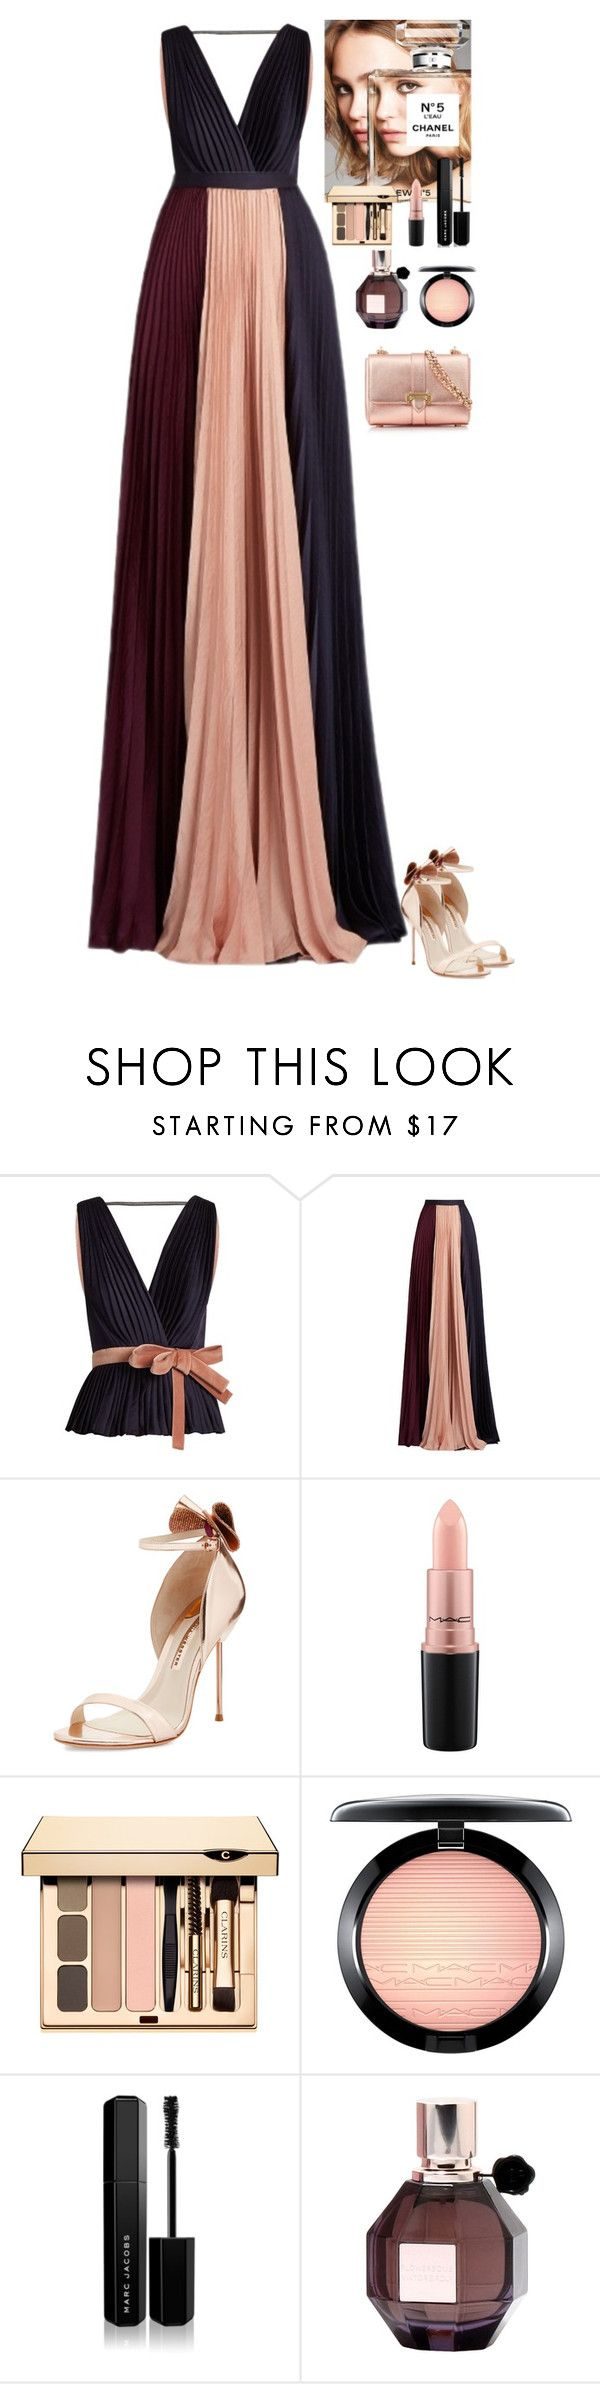 """Event"" by eliza-redkina on Polyvore featuring мода, Roksanda, Sophia Webster, Chanel, MAC Cosmetics, Marc Jacobs, Viktor & Rolf, Aspinal of London, outfit и like"